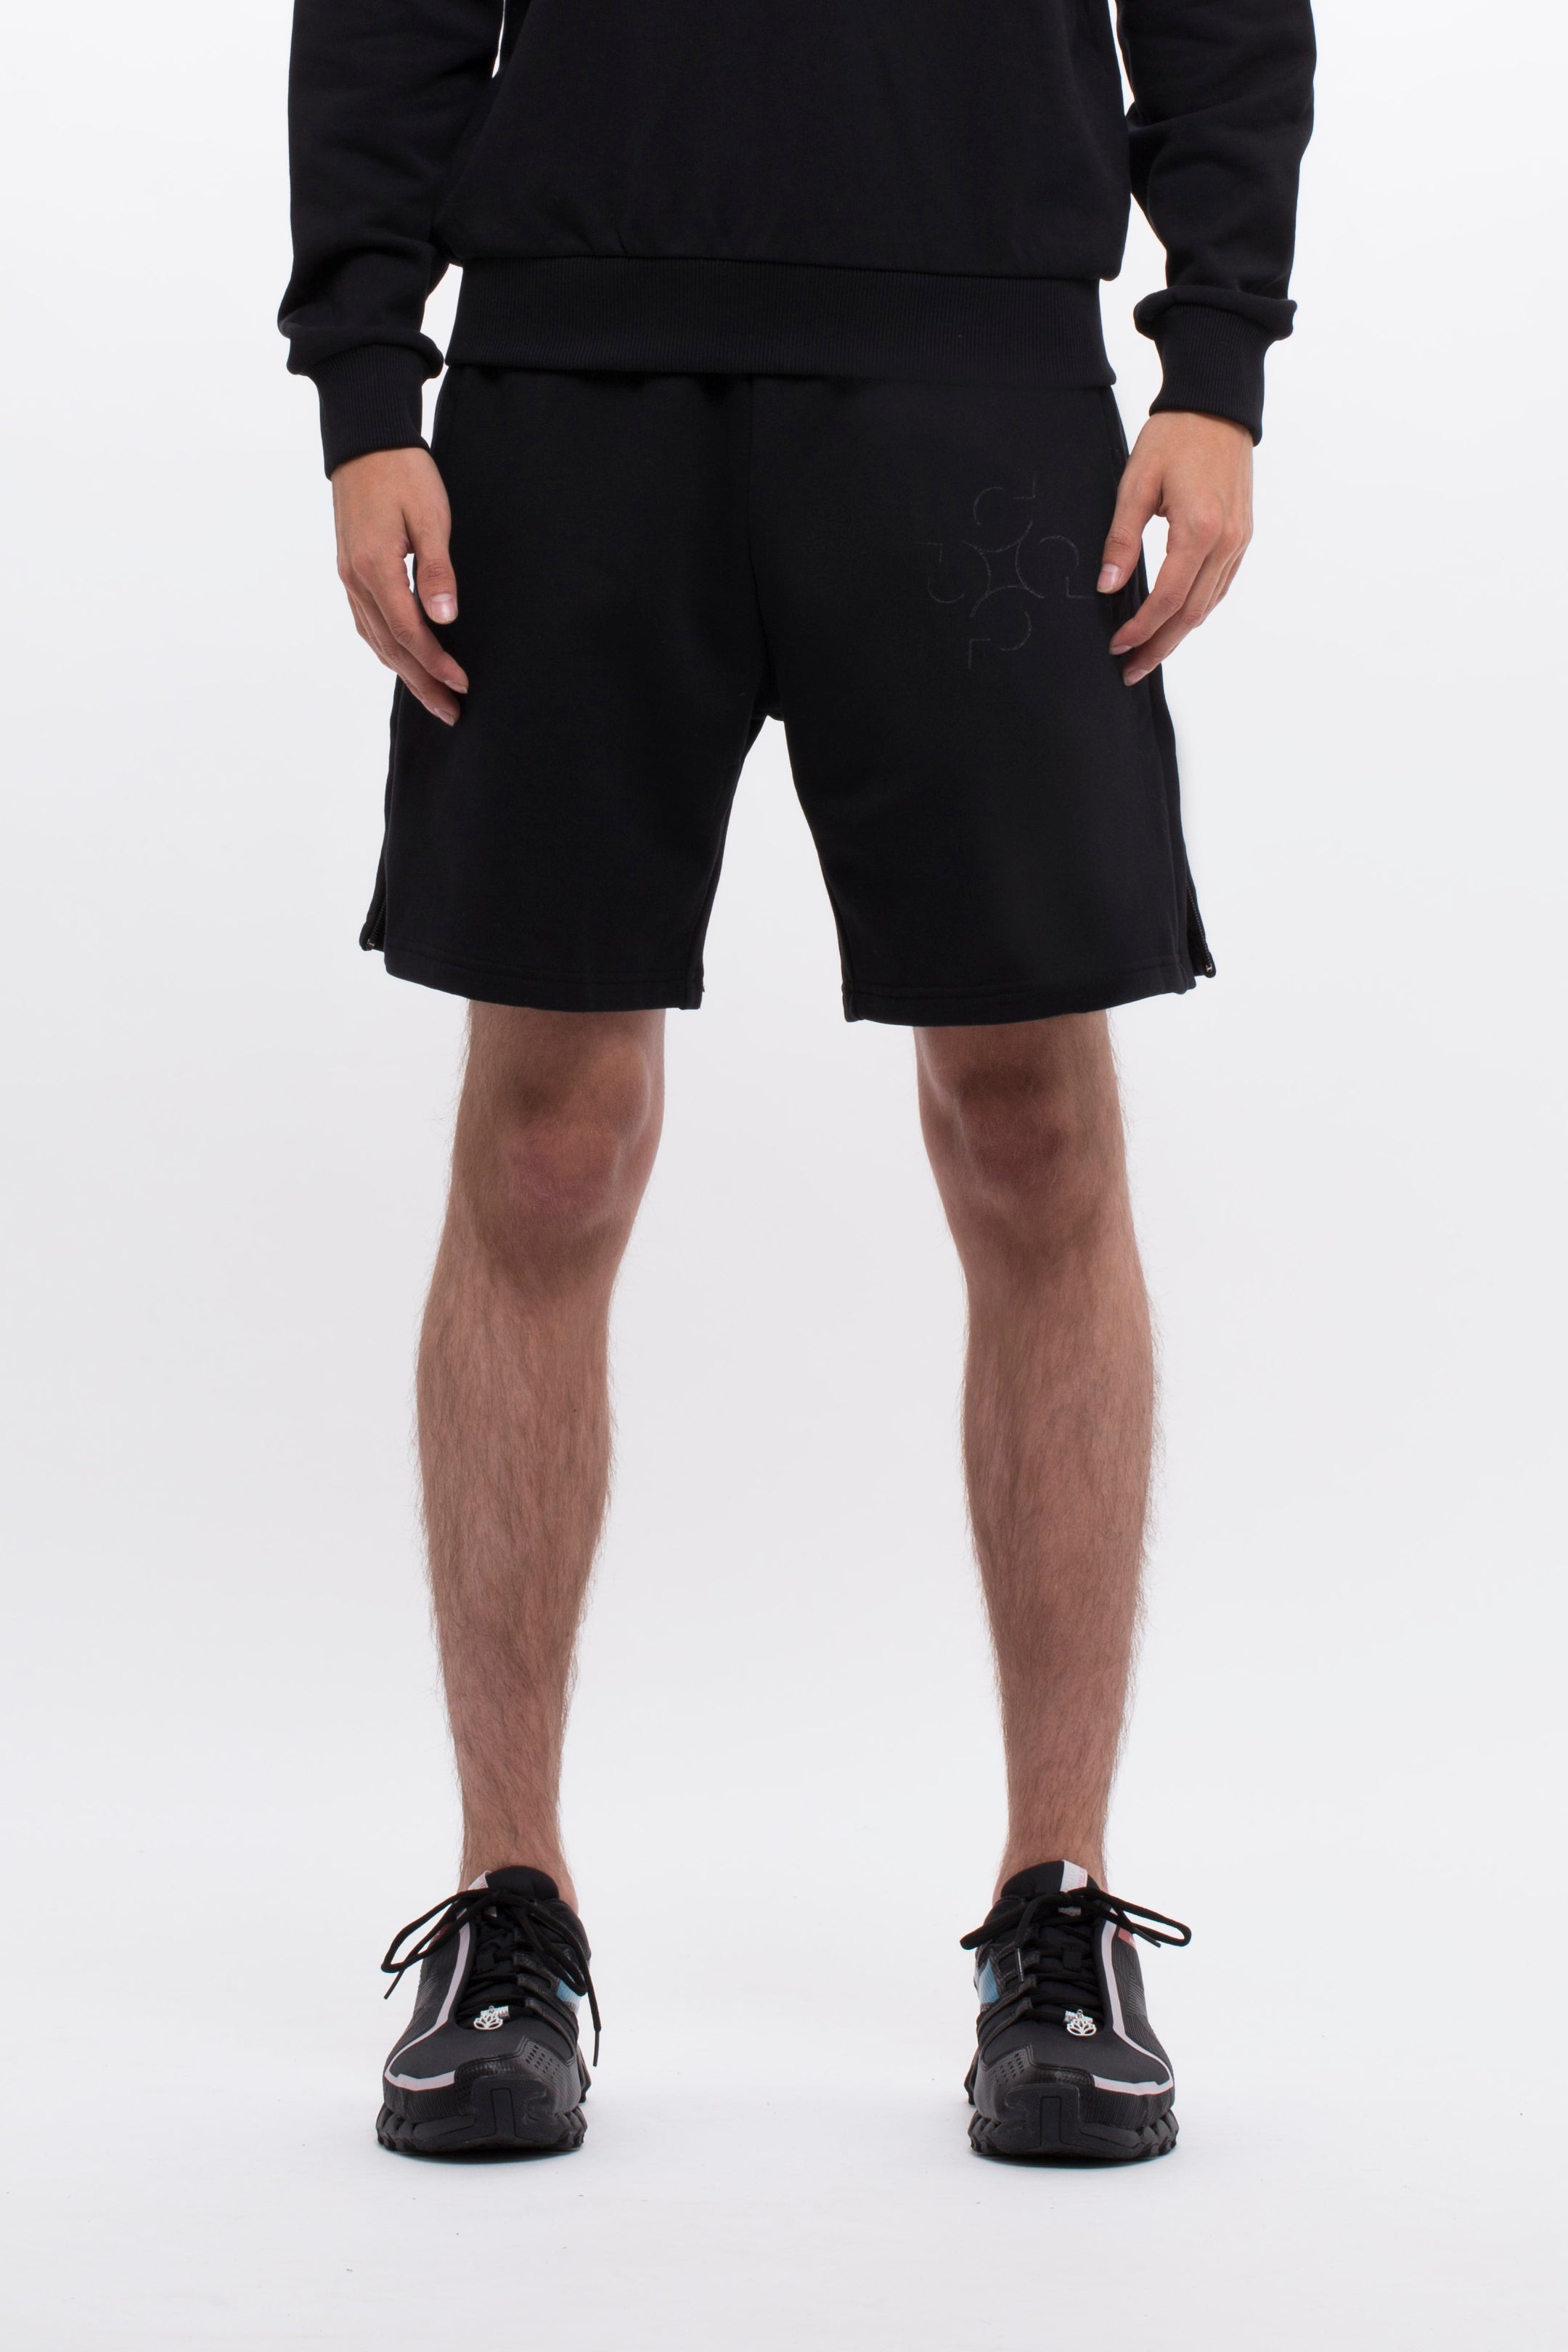 MONOGRAM LOUNGE SHORTS - BLACK